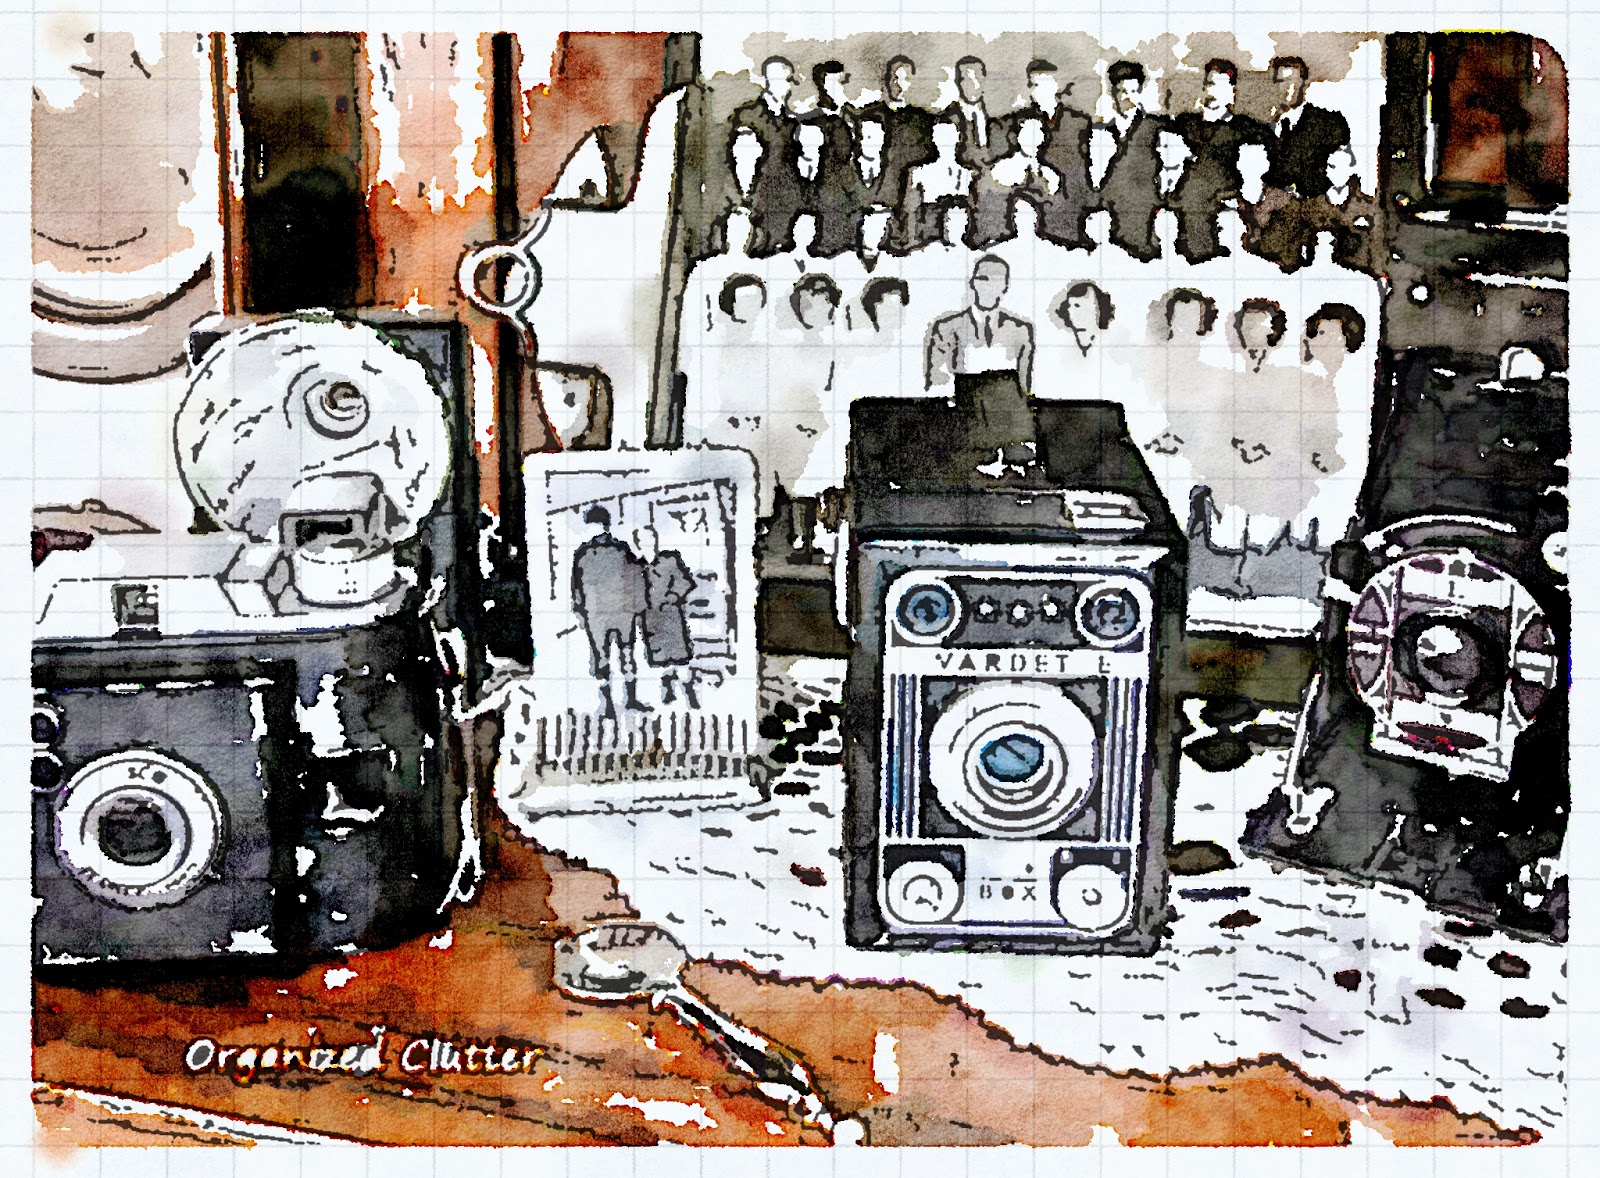 Waterlogue Cameras & vintage photos www.organizedclutterqueen.blogspot.com